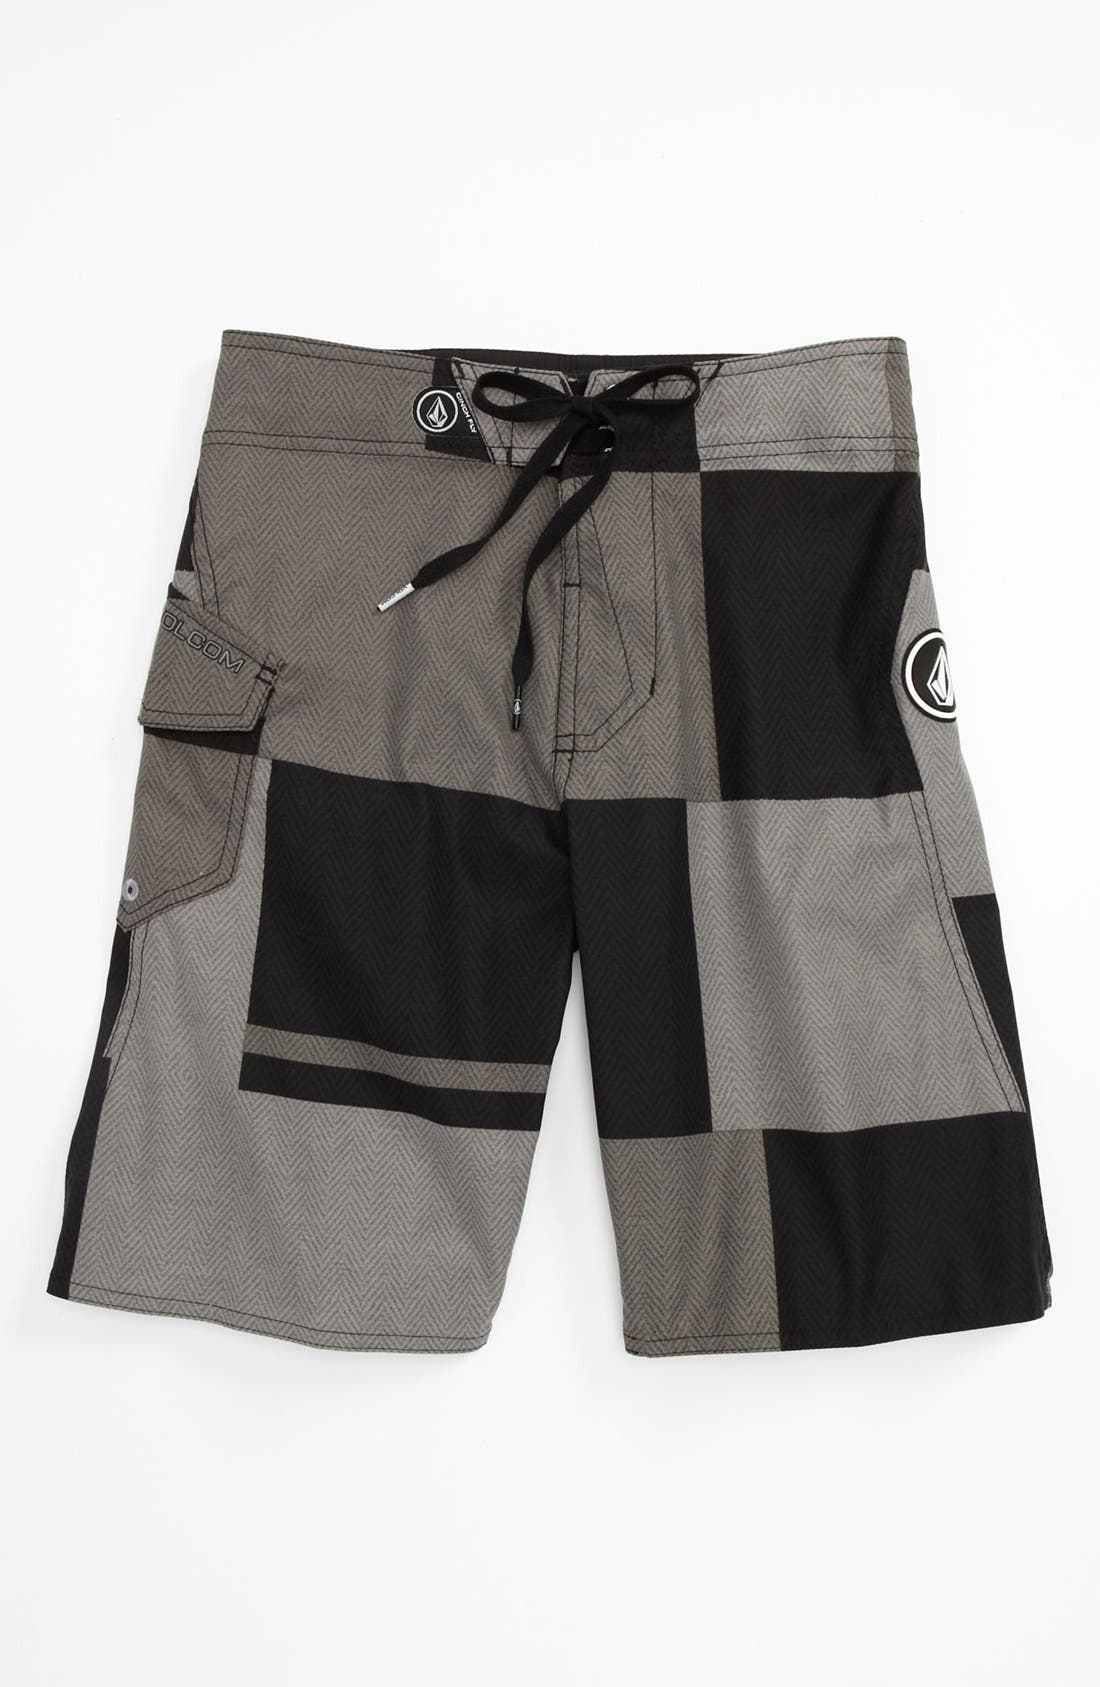 Main Image - Volcom 'Maguro' Colorblocked Board Shorts (Big Boys)